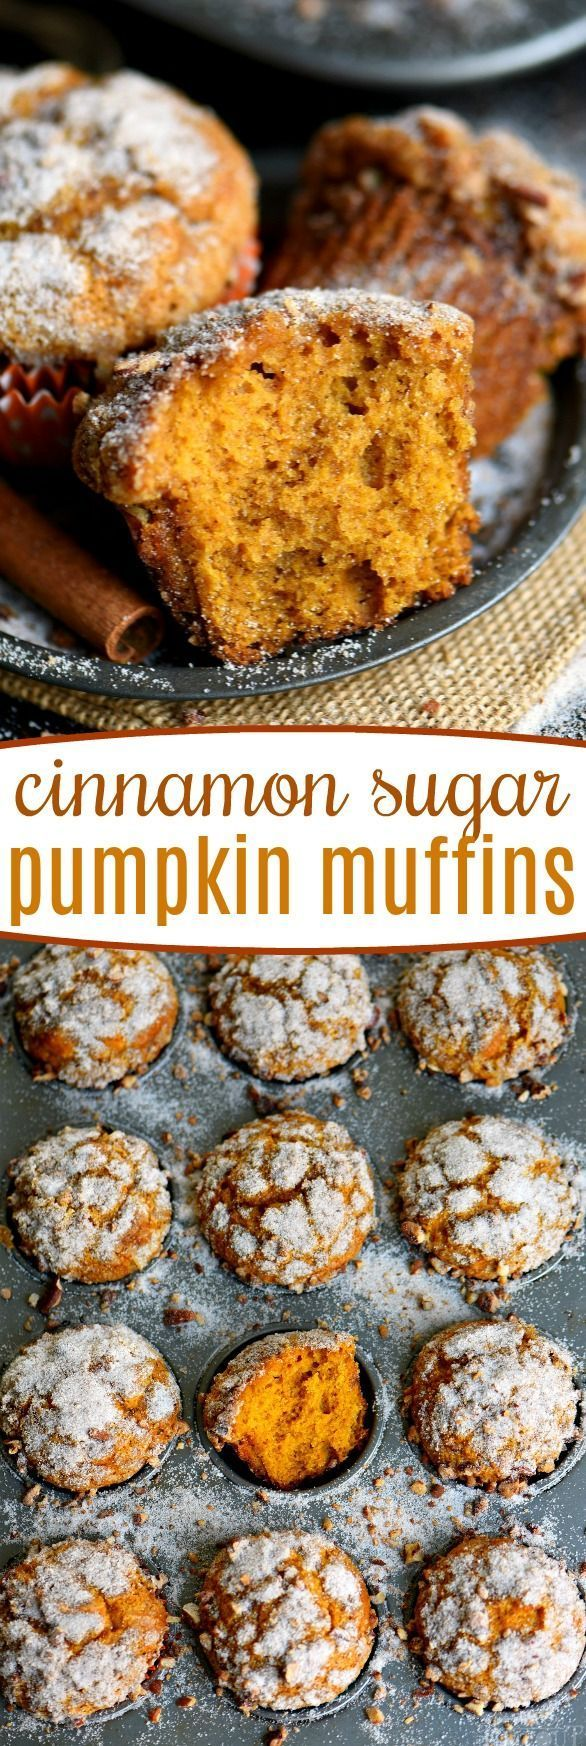 Say hello to fall with these delicious Cinnamon Sugar Pumpkin Muffins! Exceptionally moist, surprisingly light, and entirely irresistible!